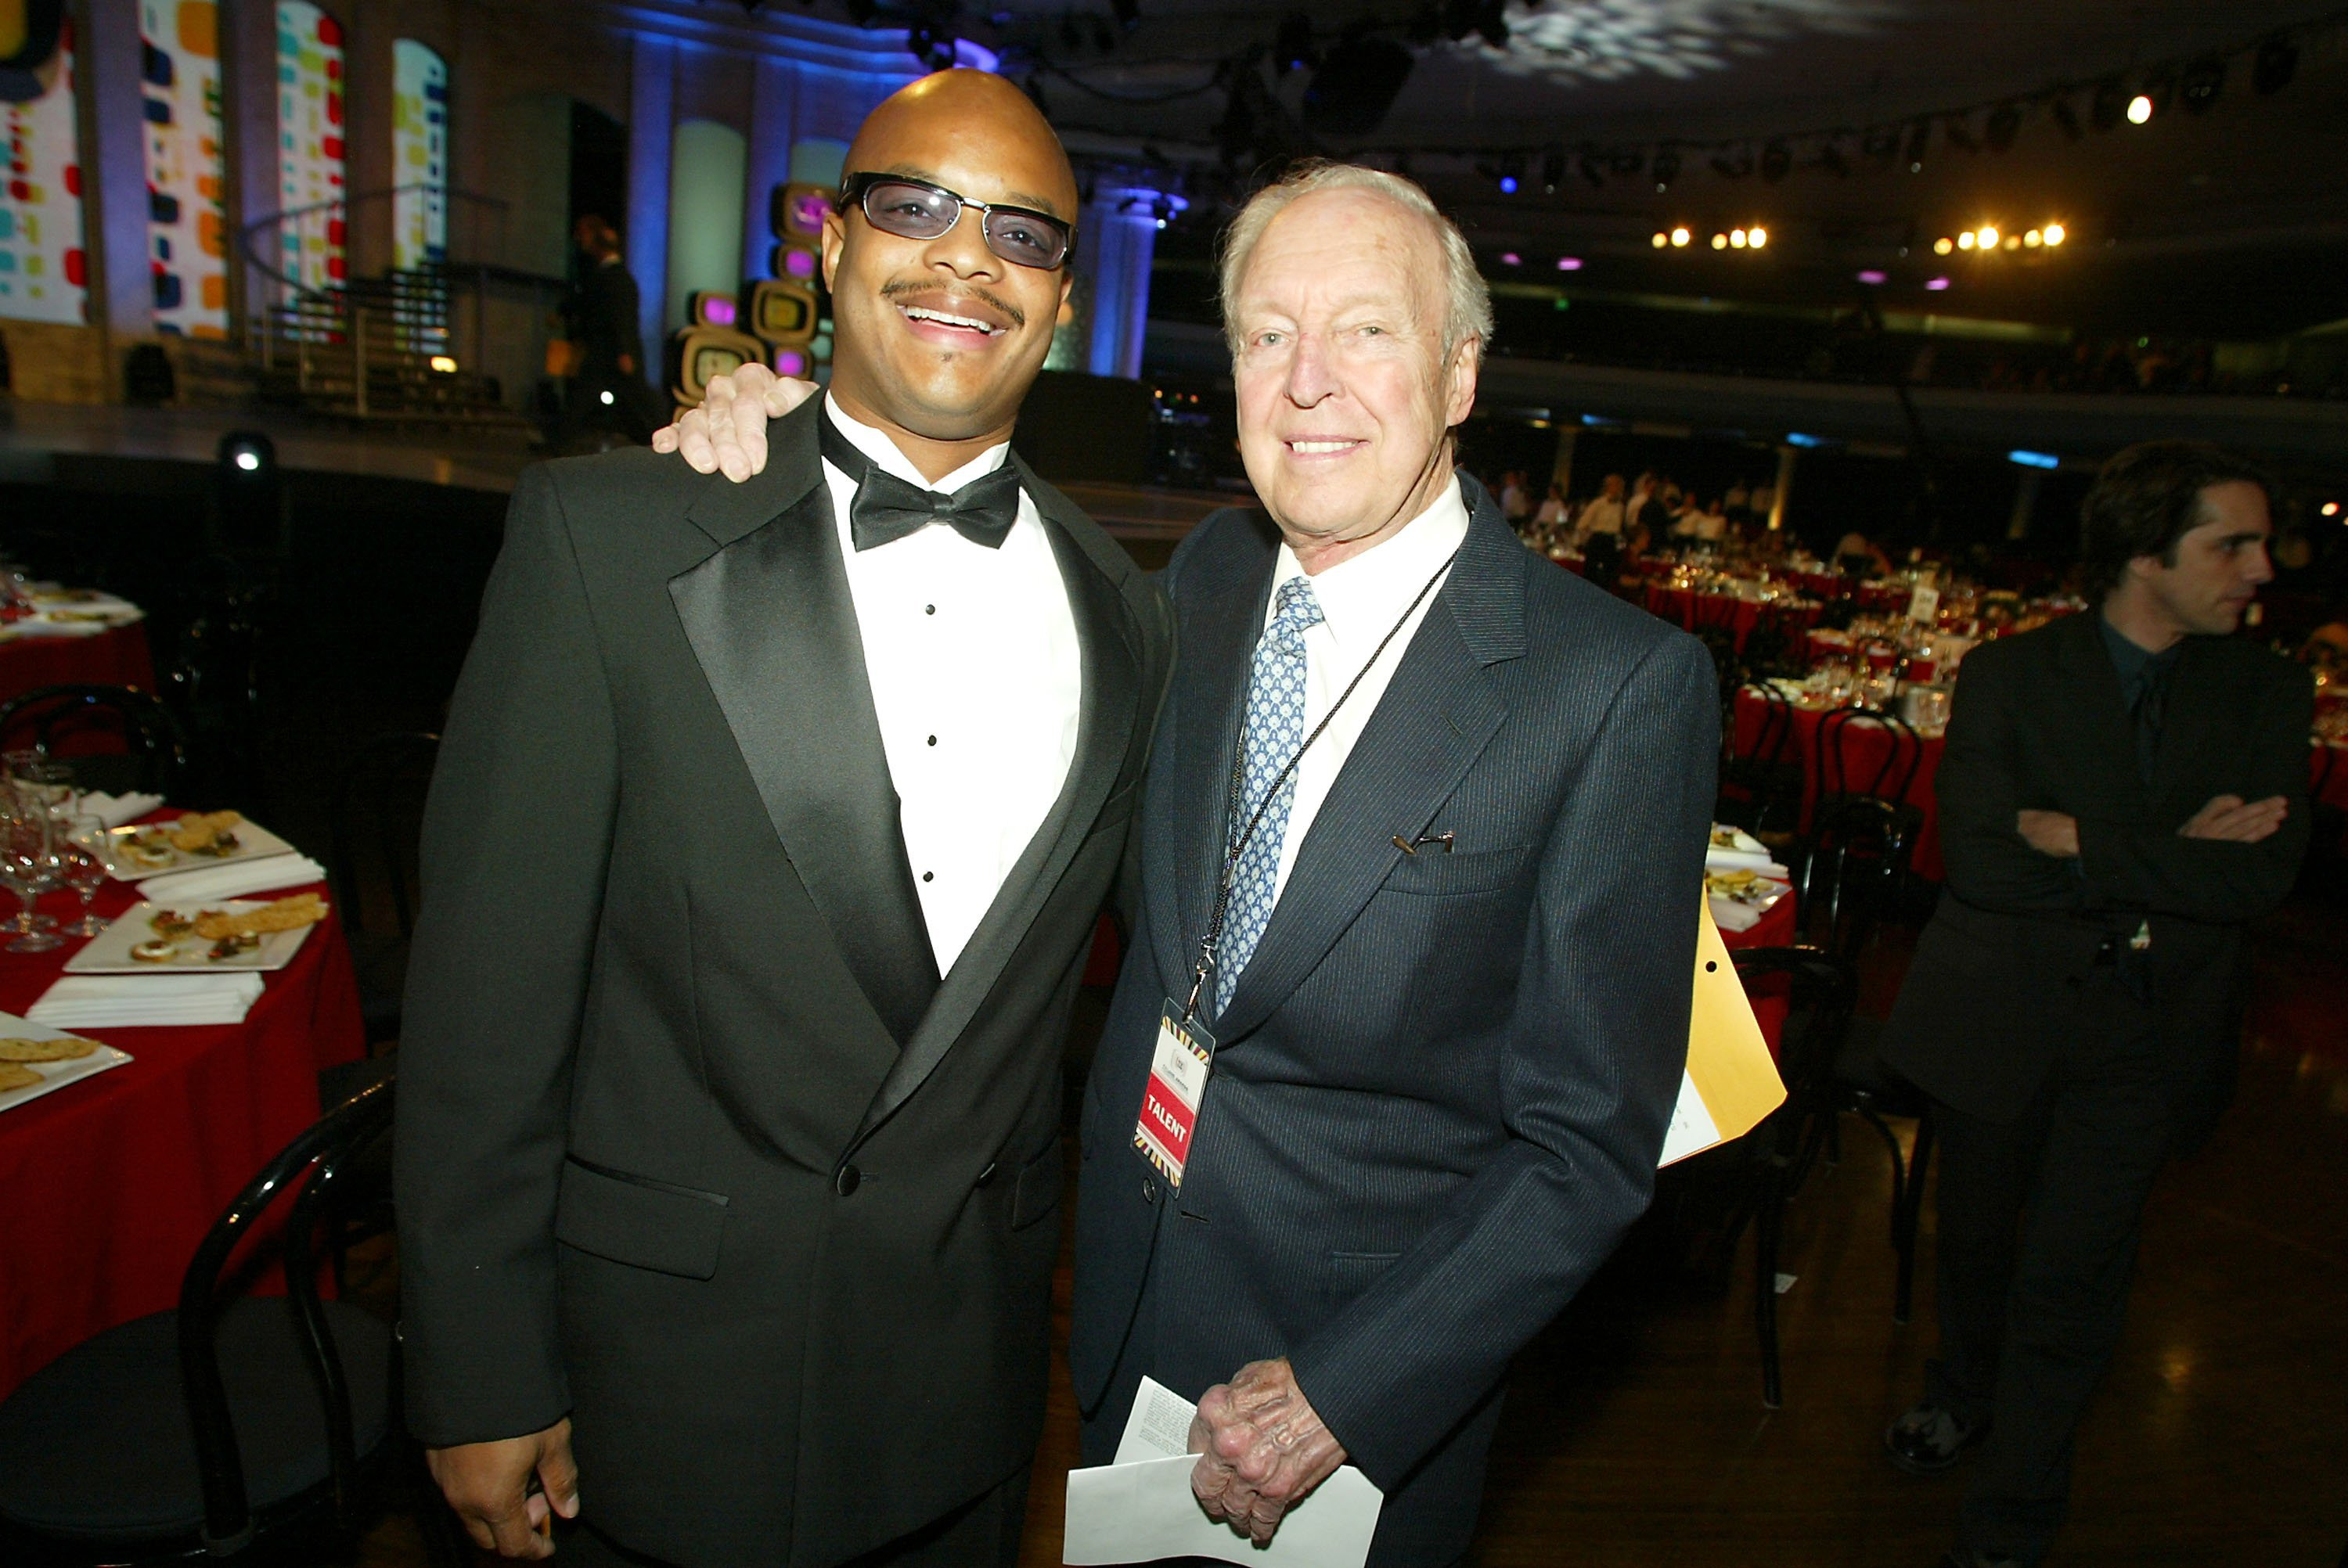 Actor Todd Bridges poses with Conrad Bain during the TV Land Awards 2003 at the Hollywood Palladium in California. I Image: Getty Images.